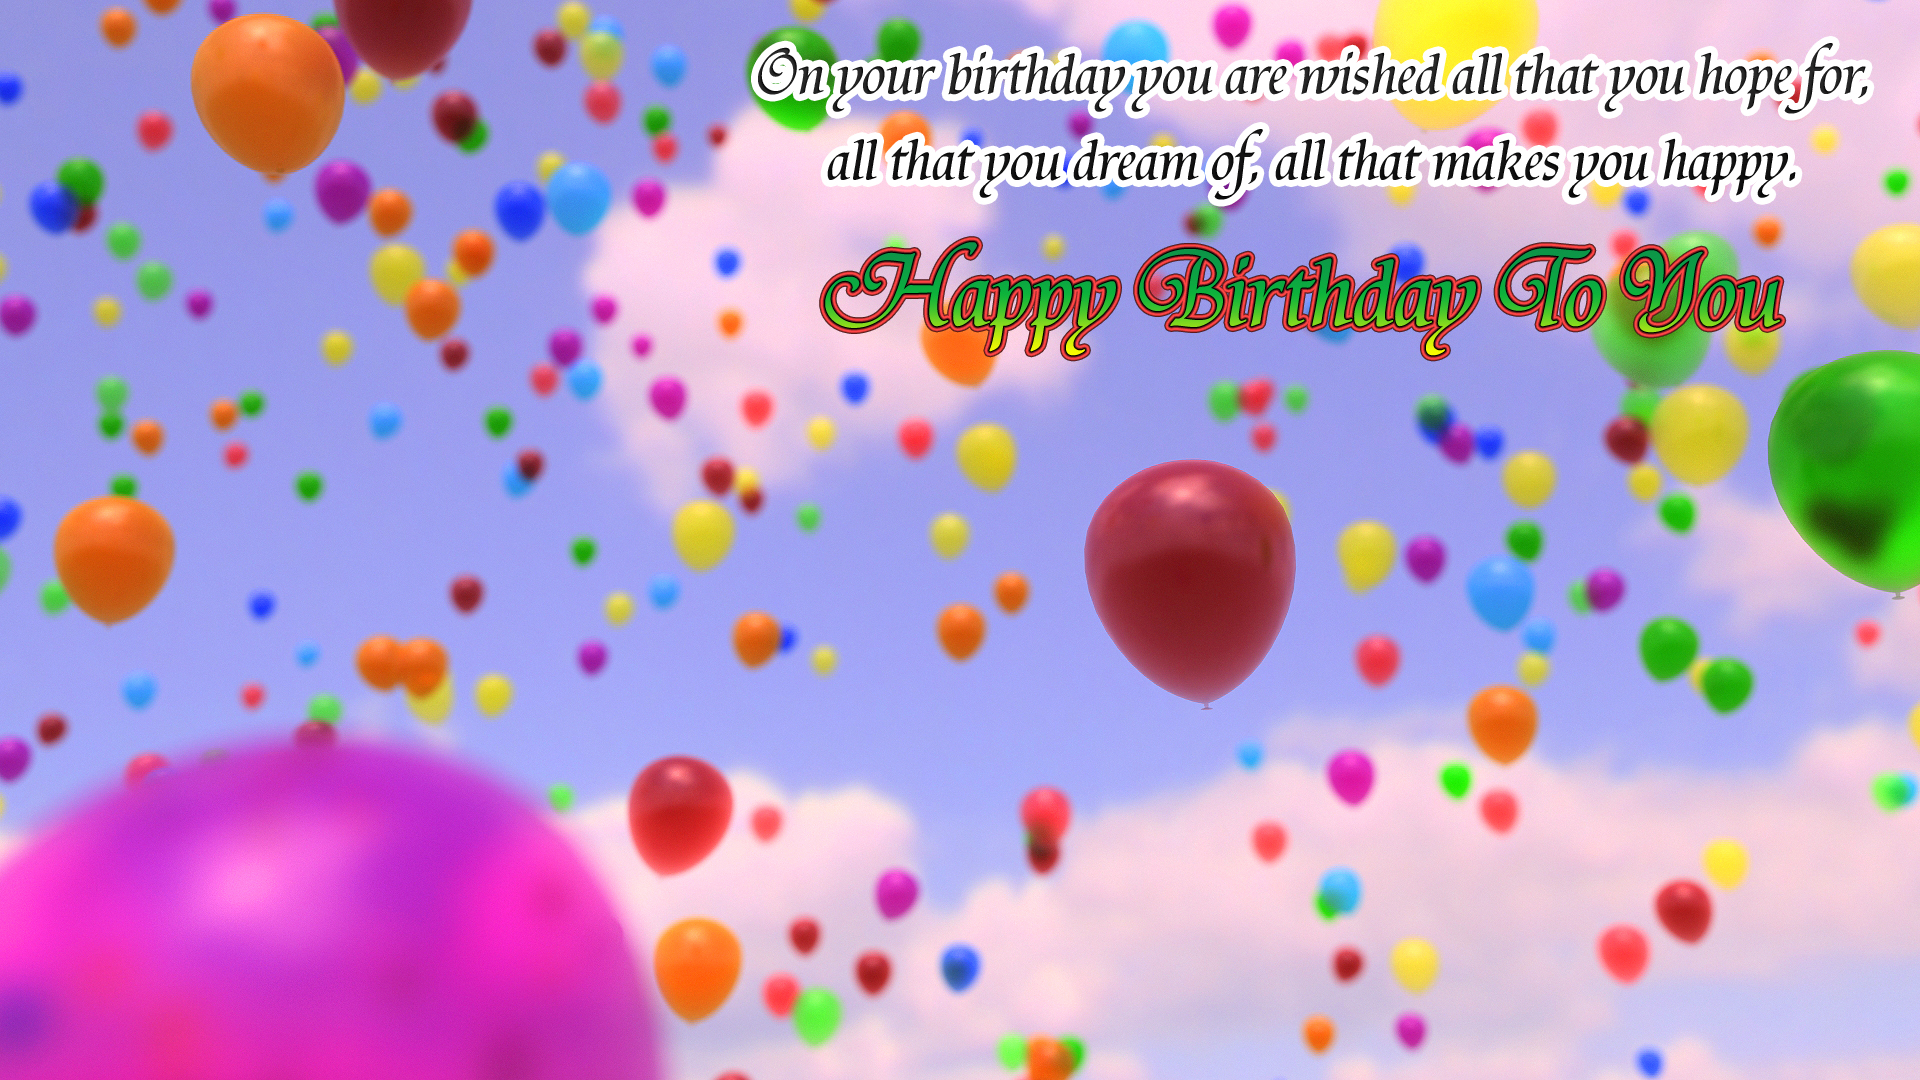 happy birthday cards hd wallpapers ; 039b1c62fdd29fbc284d7e49722ef746